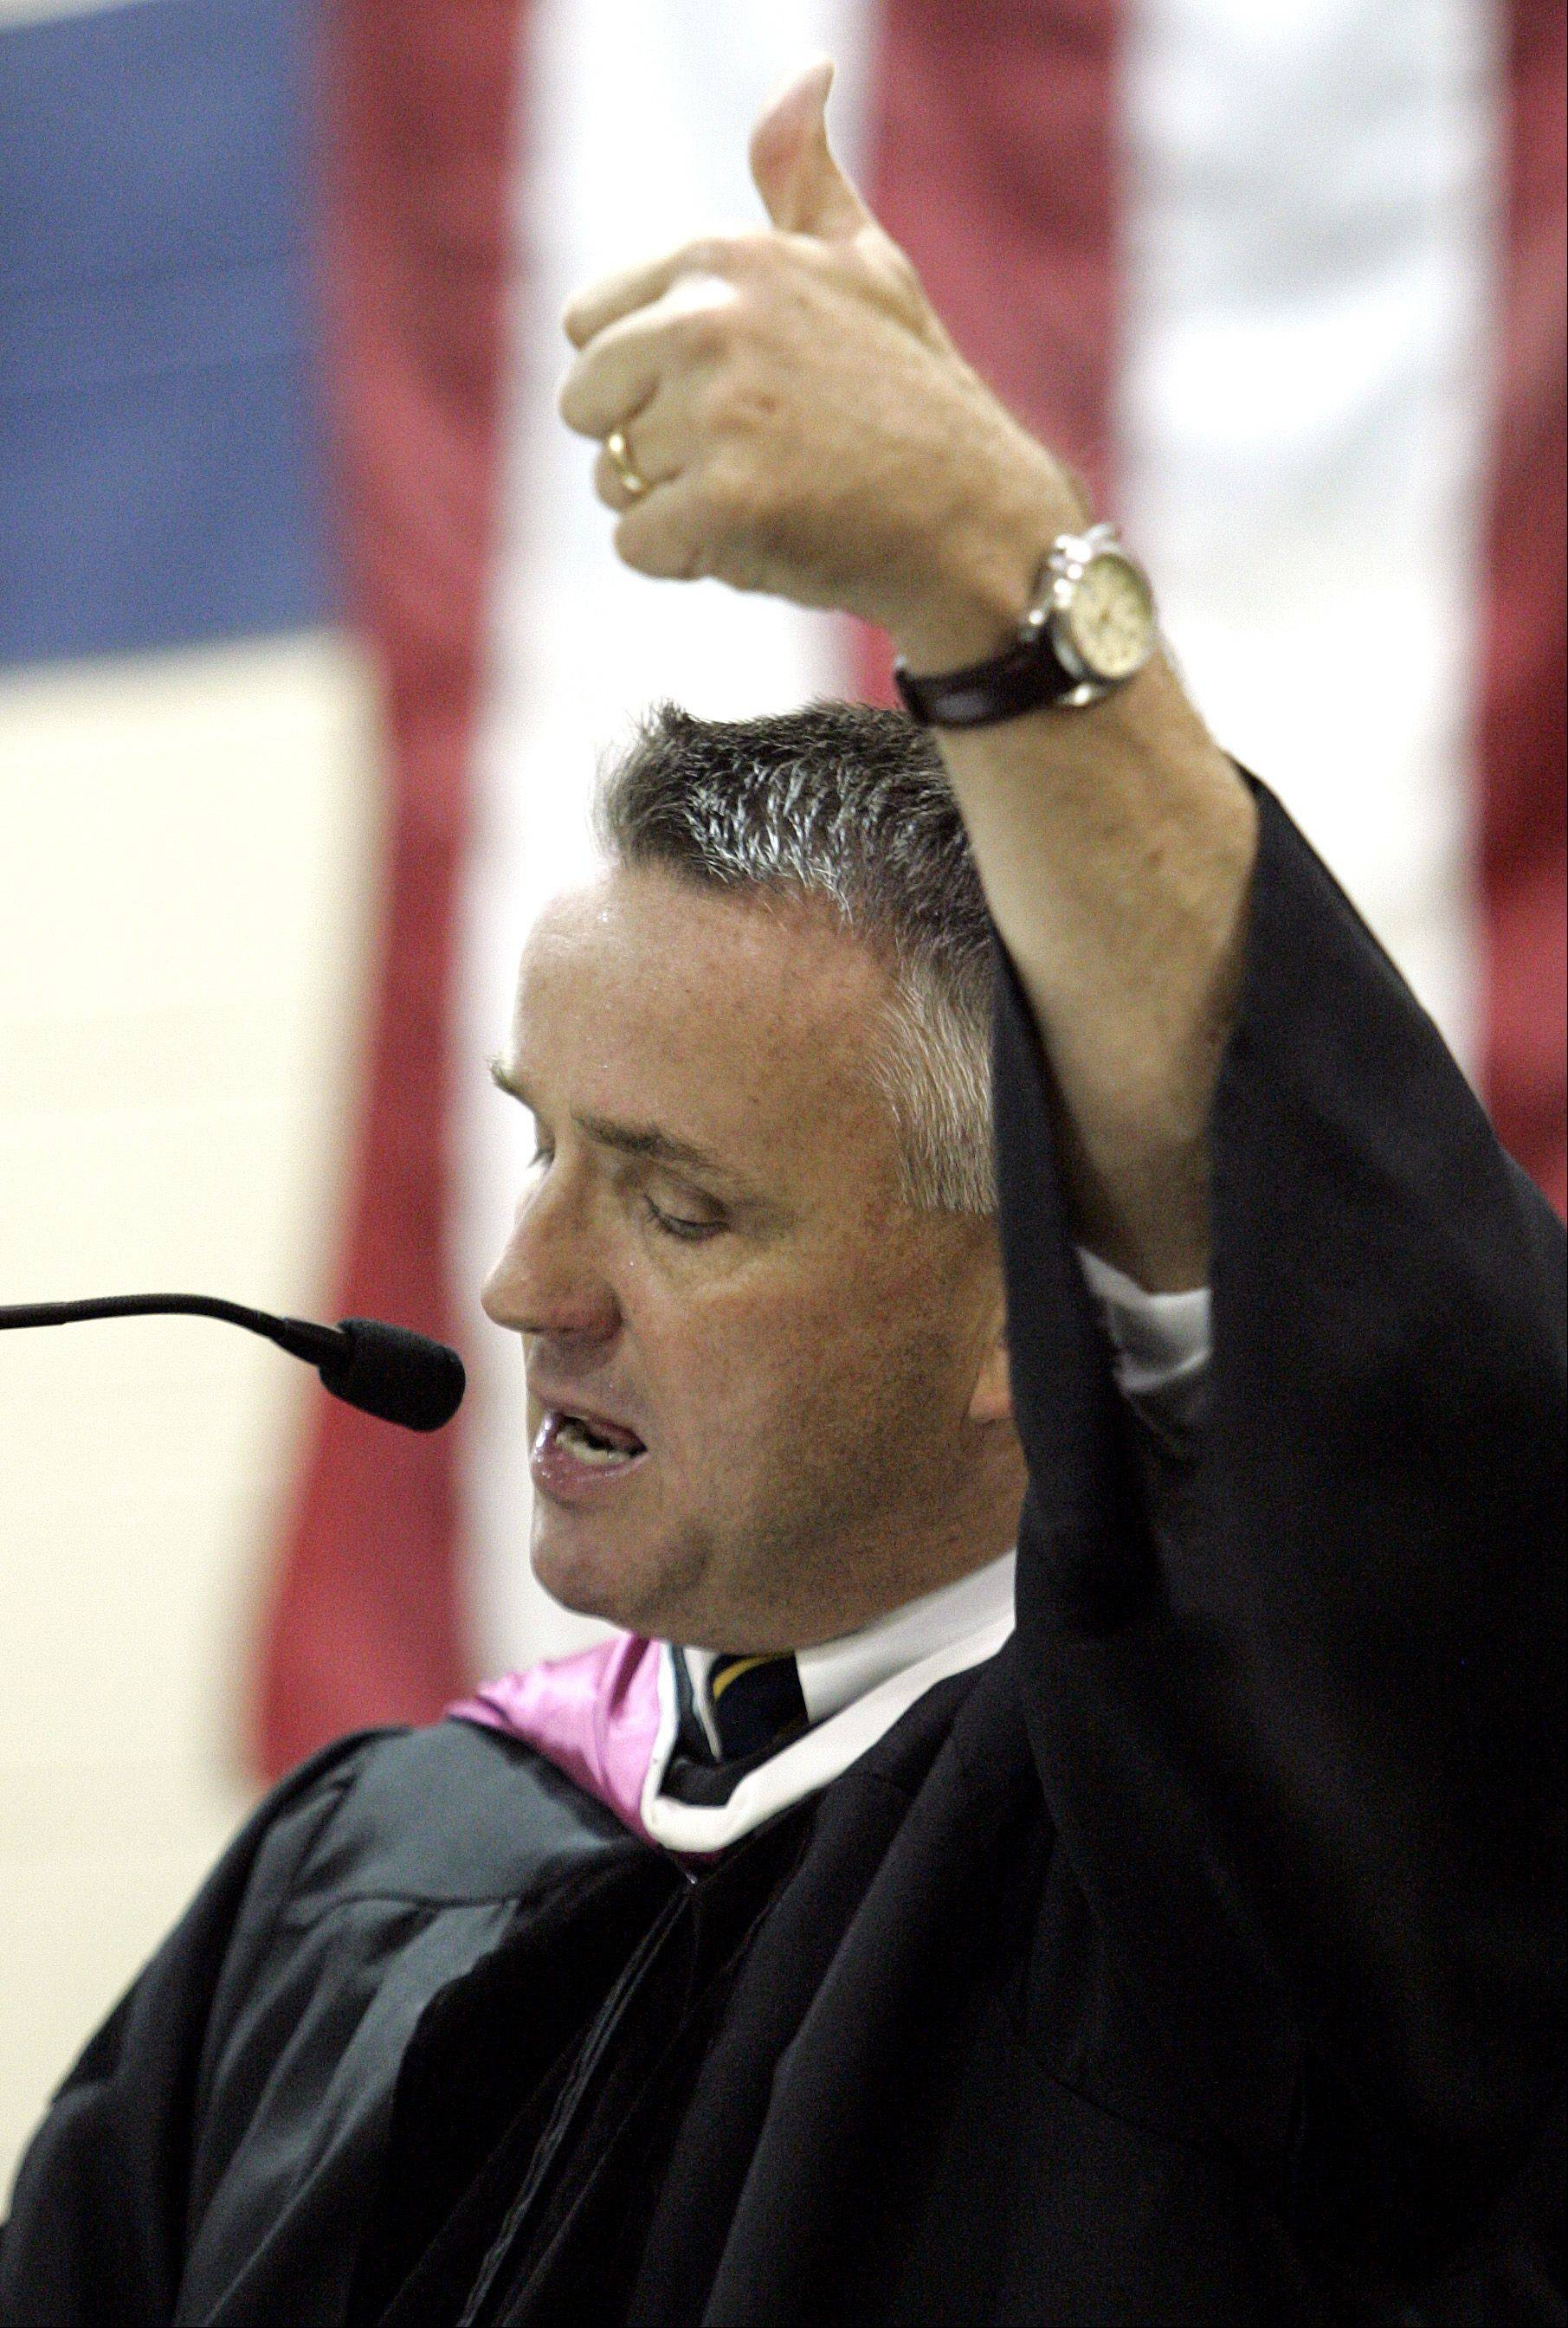 Jeff Brierton gives seniors a thumbs-up during his speech at a 2006 commencement ceremony when he was Round Lake High School's principal. He won't be moving up, as planned, from principal at Warren Township High School's O'Plaine Road campus in Gurnee to superintendent.